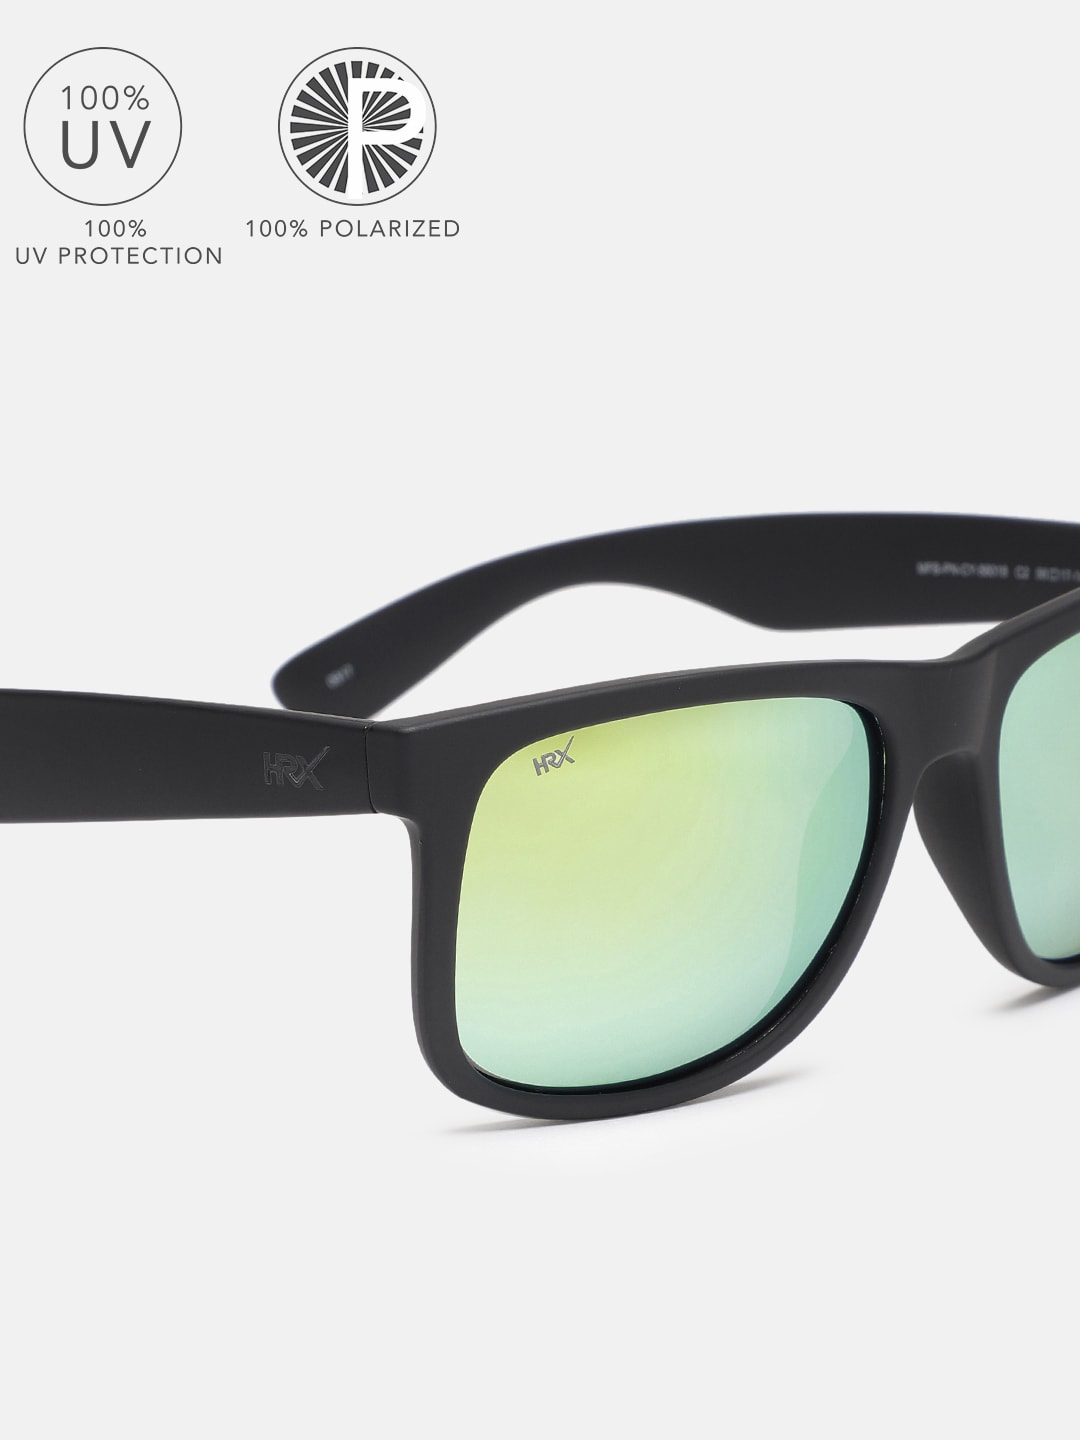 1a4649dbff604 Sunglasses For Men - Buy Mens Sunglasses Online in India